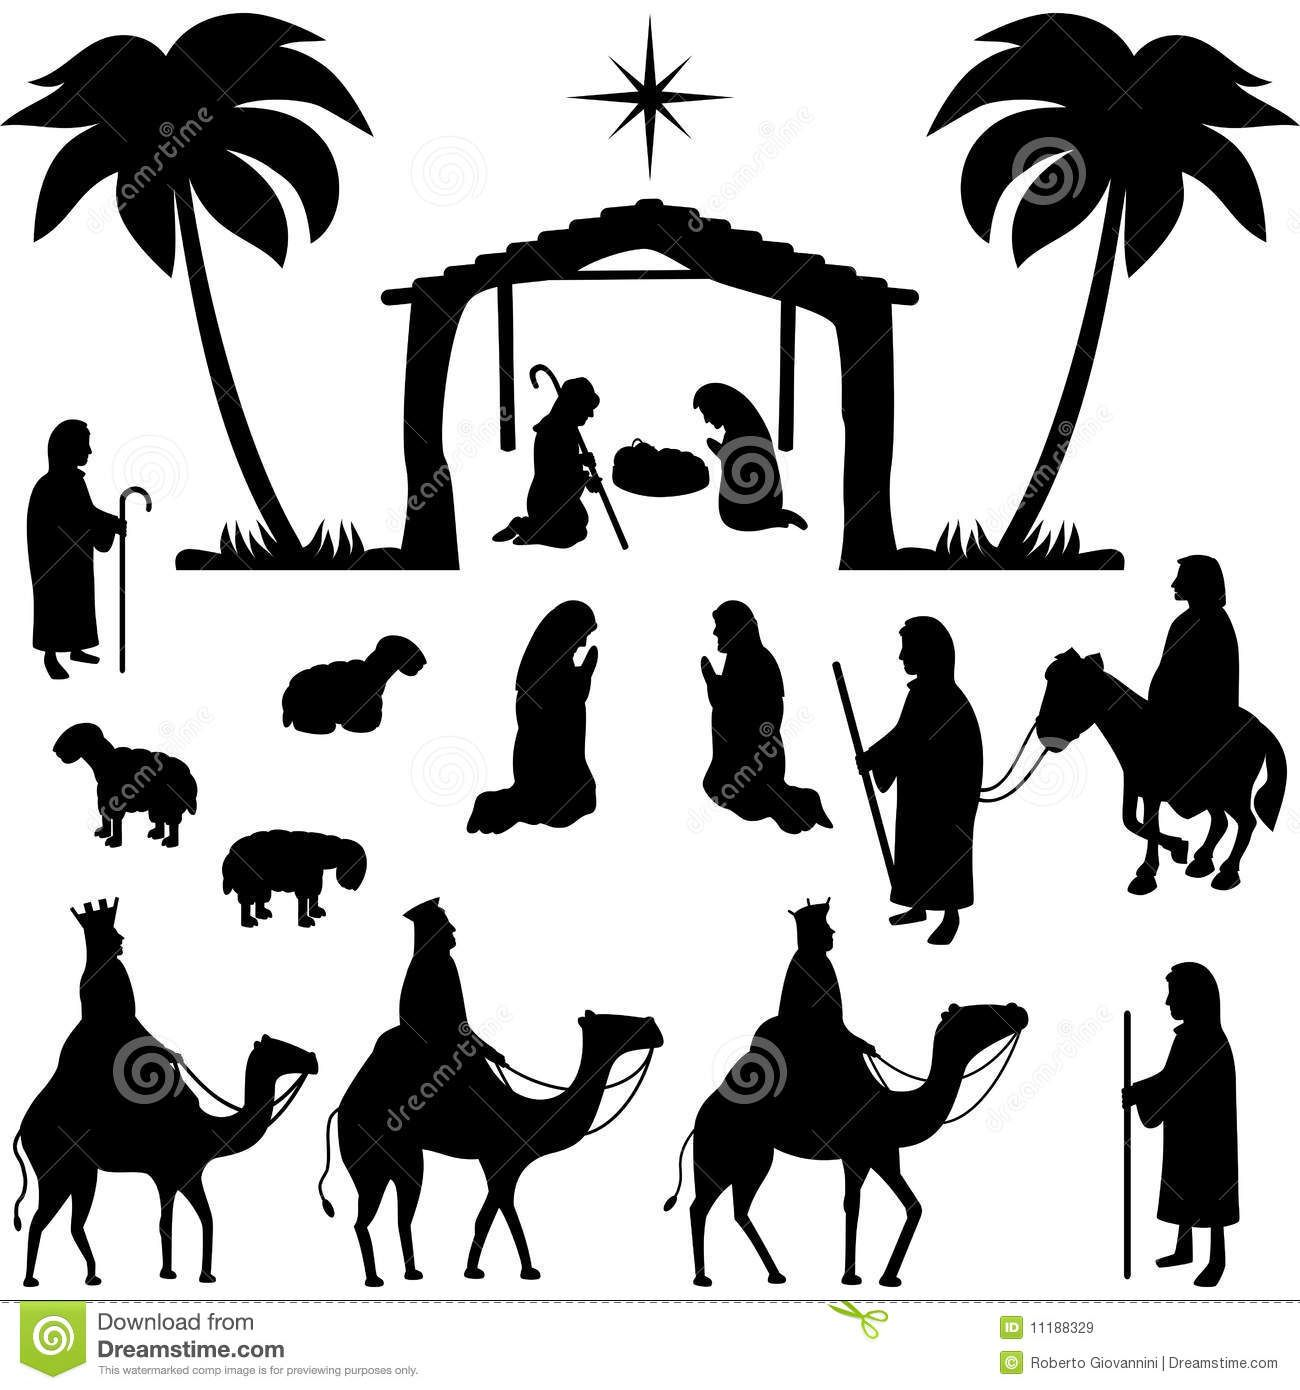 hight resolution of nativity silhouettes collection download from over 27 million high quality stock photos images vectors sign up for free today image 11188329